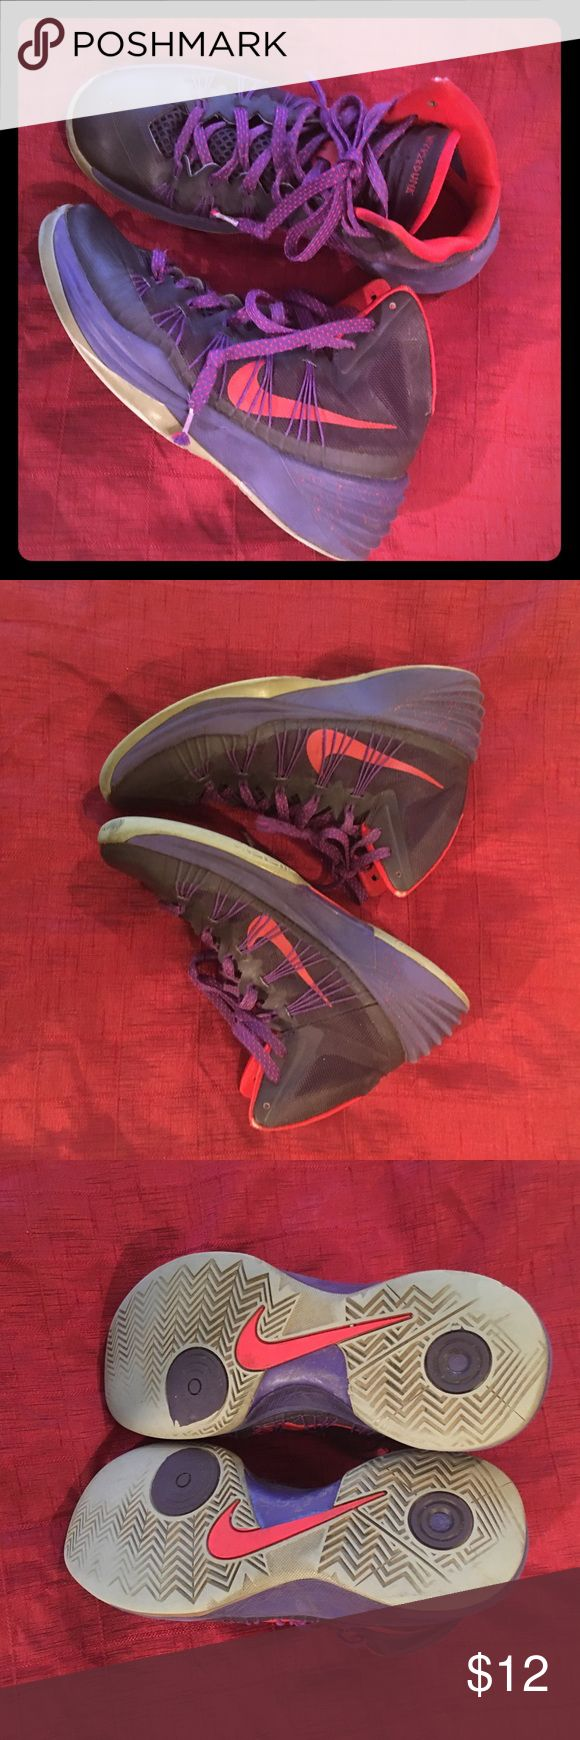 Nike Hyperdunk Sneakers Man Boy 7.5 Nike Hyperdunk Sneakers Man Boy 7.5. Pre-loved but still great comfortable shoes - please see pics. Nike Shoes Sneakers